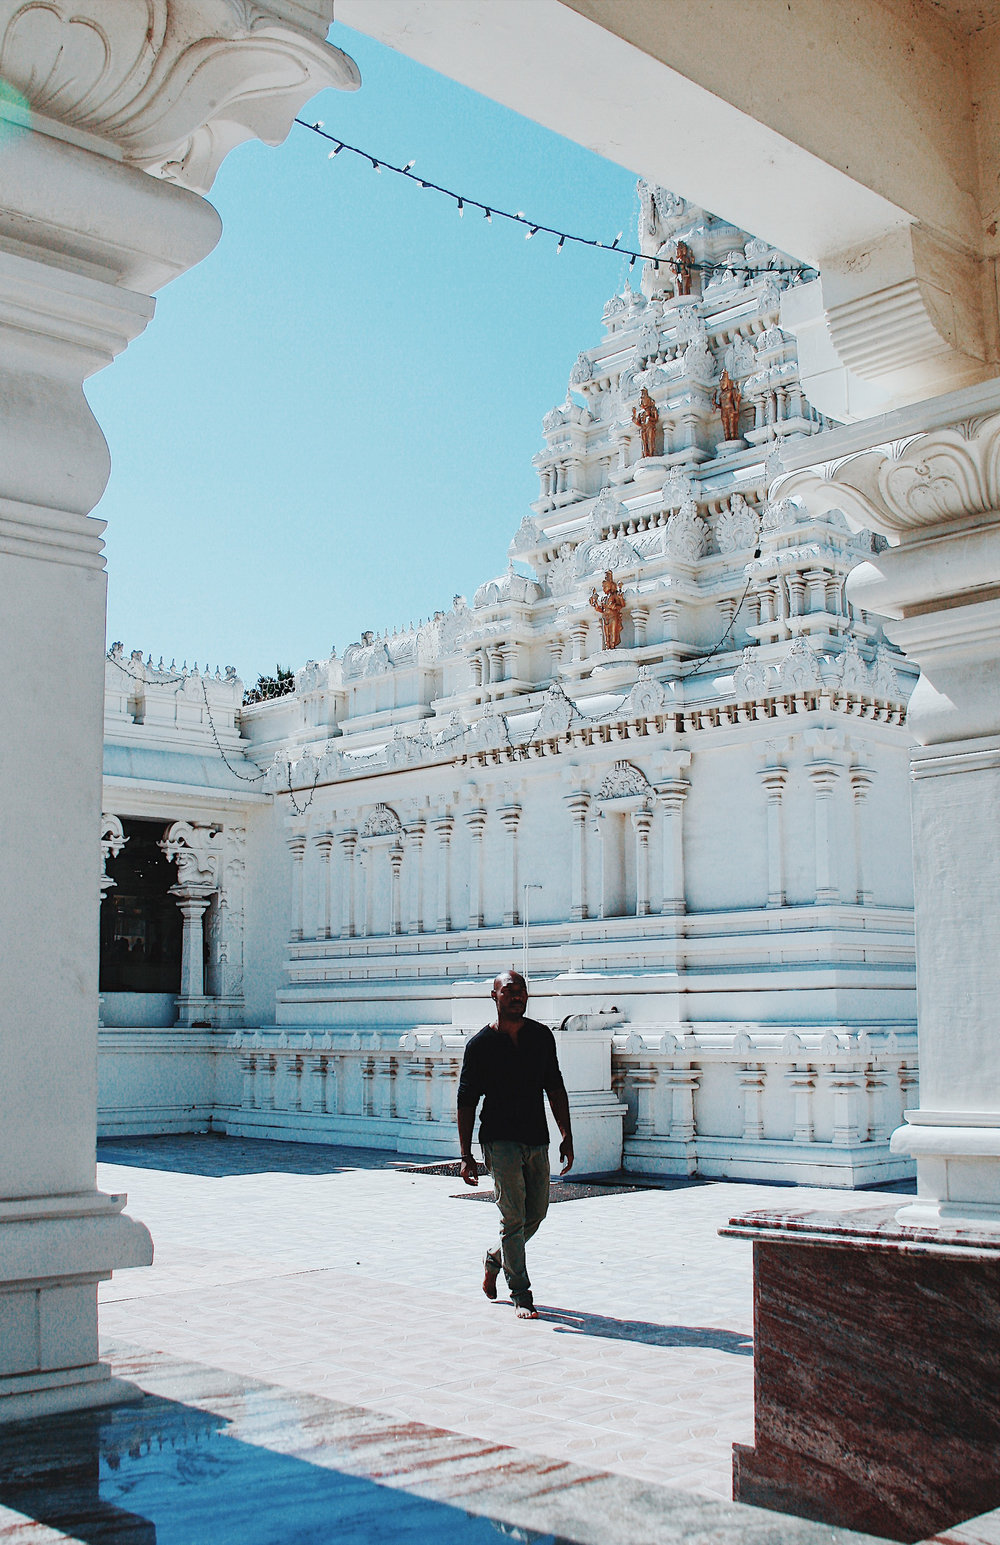 cj johnson-malibu hindu temple-best places to visit los angeles-los angeles-instagram